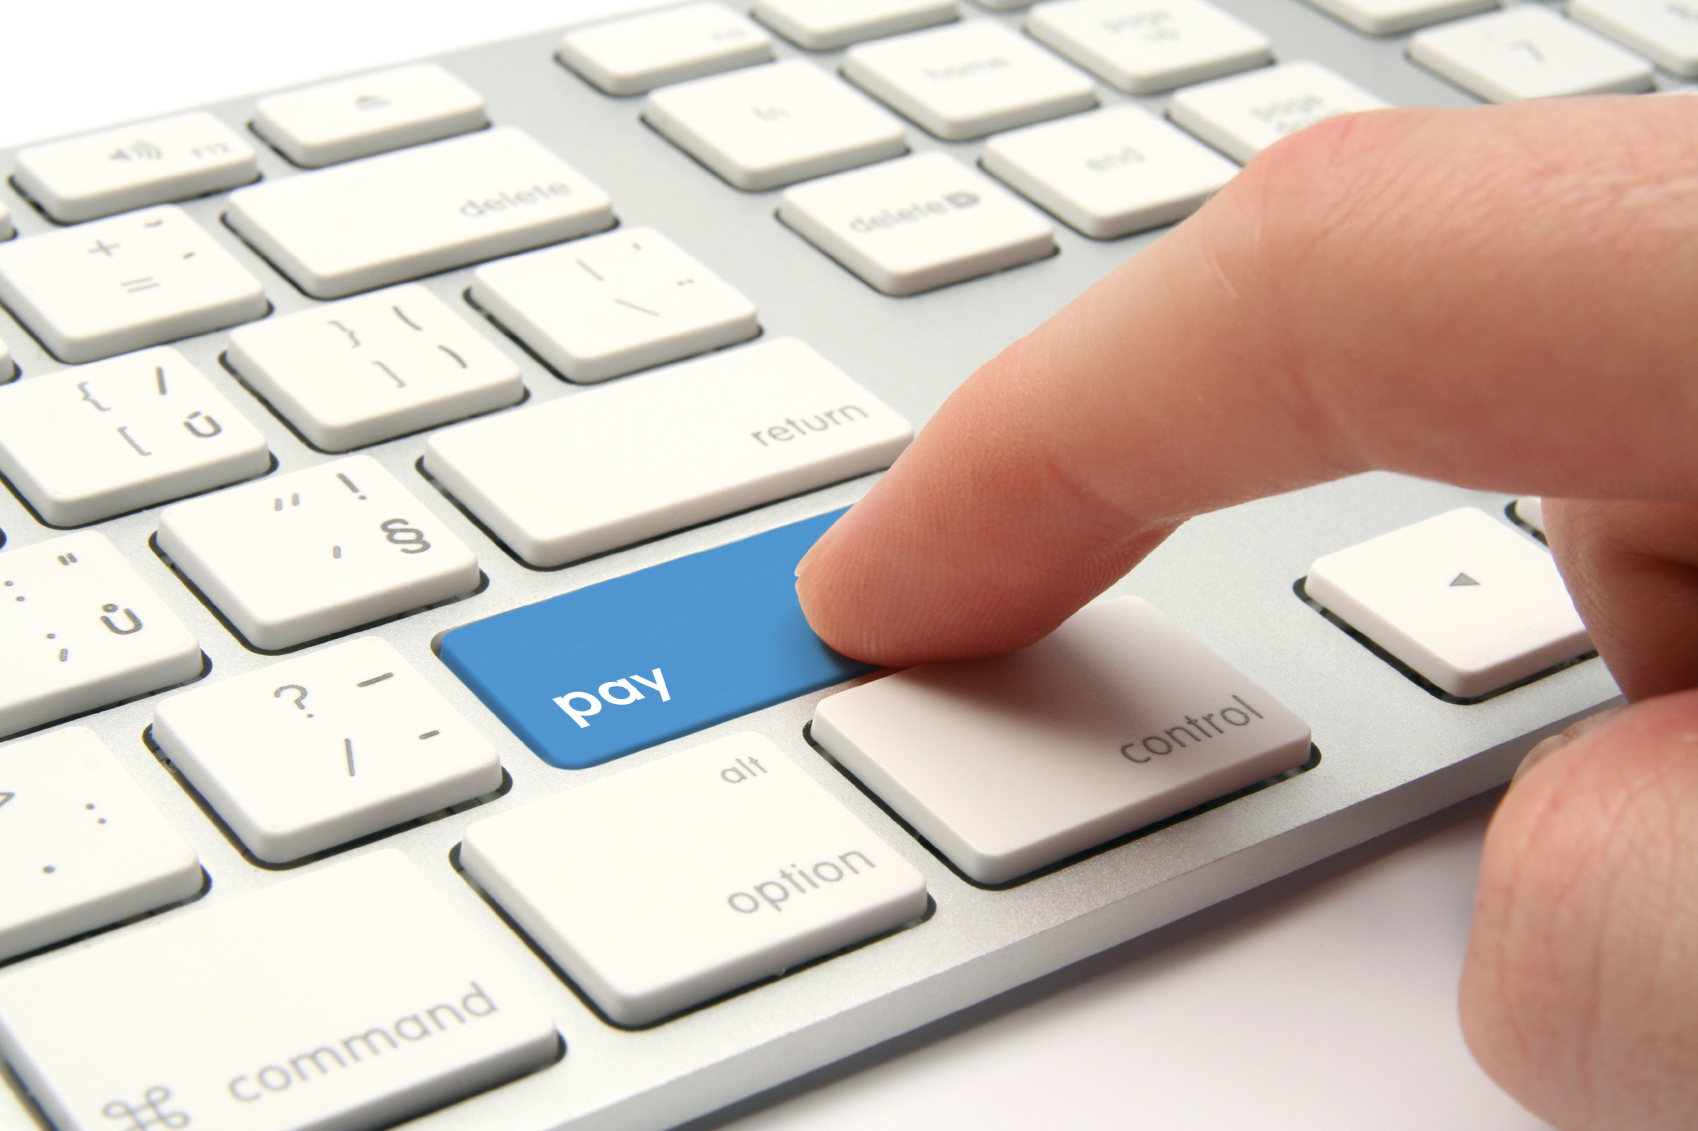 Pay-button-on-keyboard.jpg